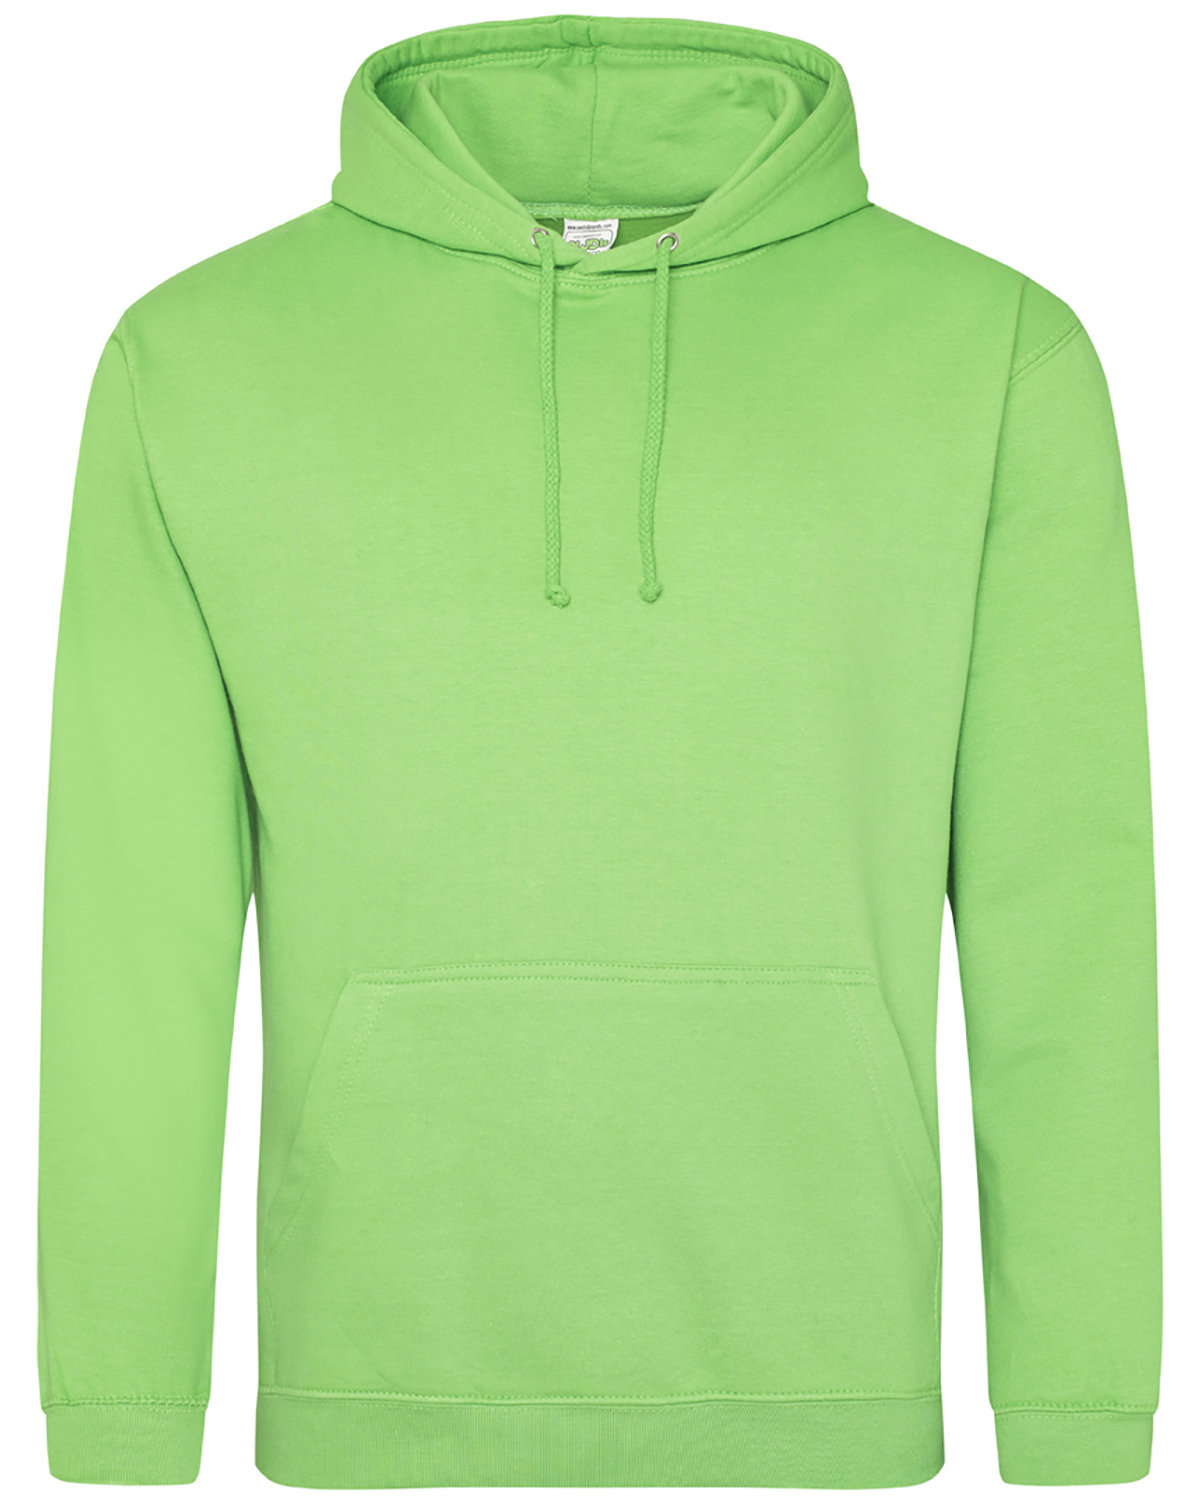 Just Hoods By AWDis Men's 80/20 Midweight College Hooded Sweatshirt LIME GREEN